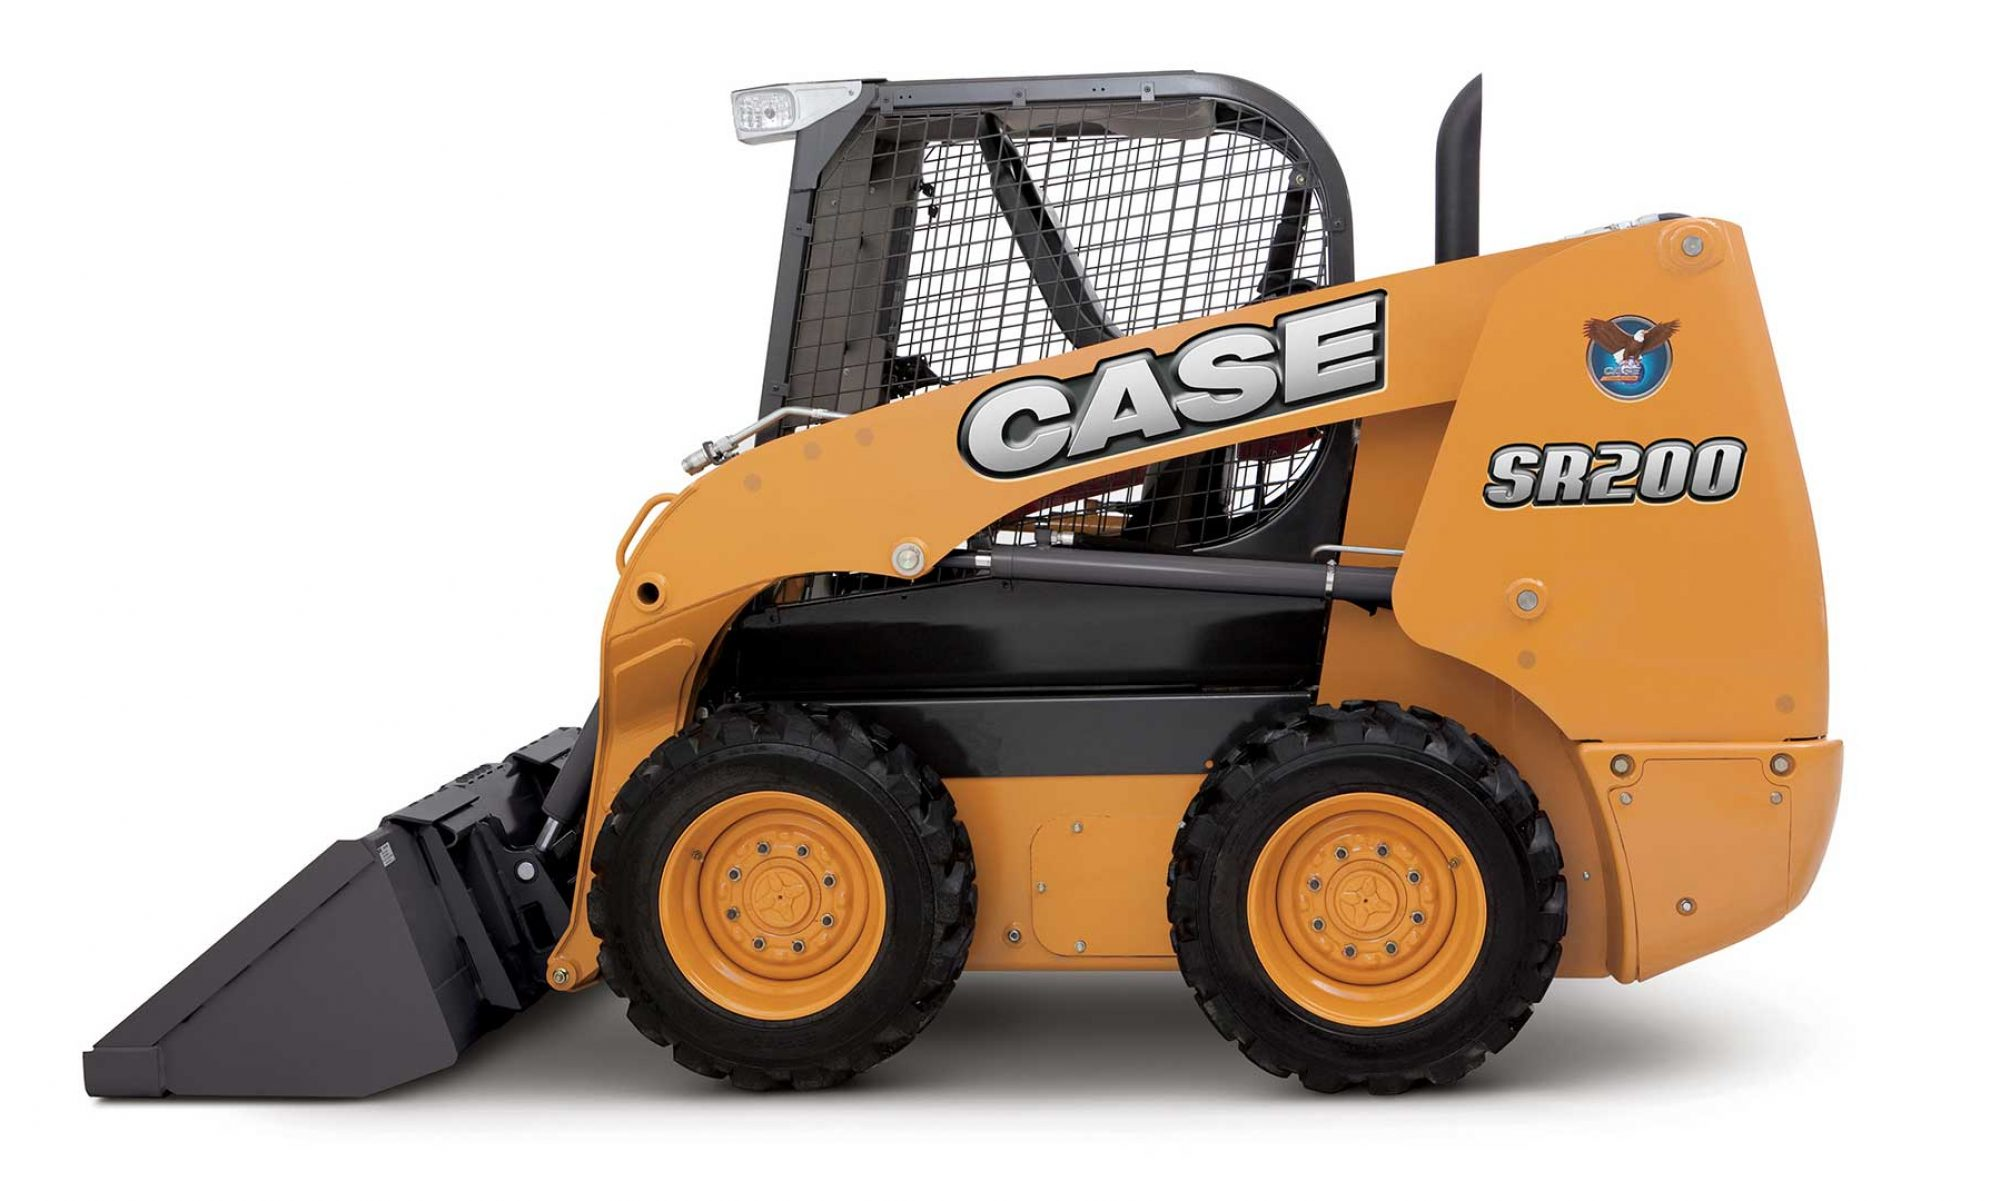 cropped-Case-Skid-Steer-SR200-1.jpg